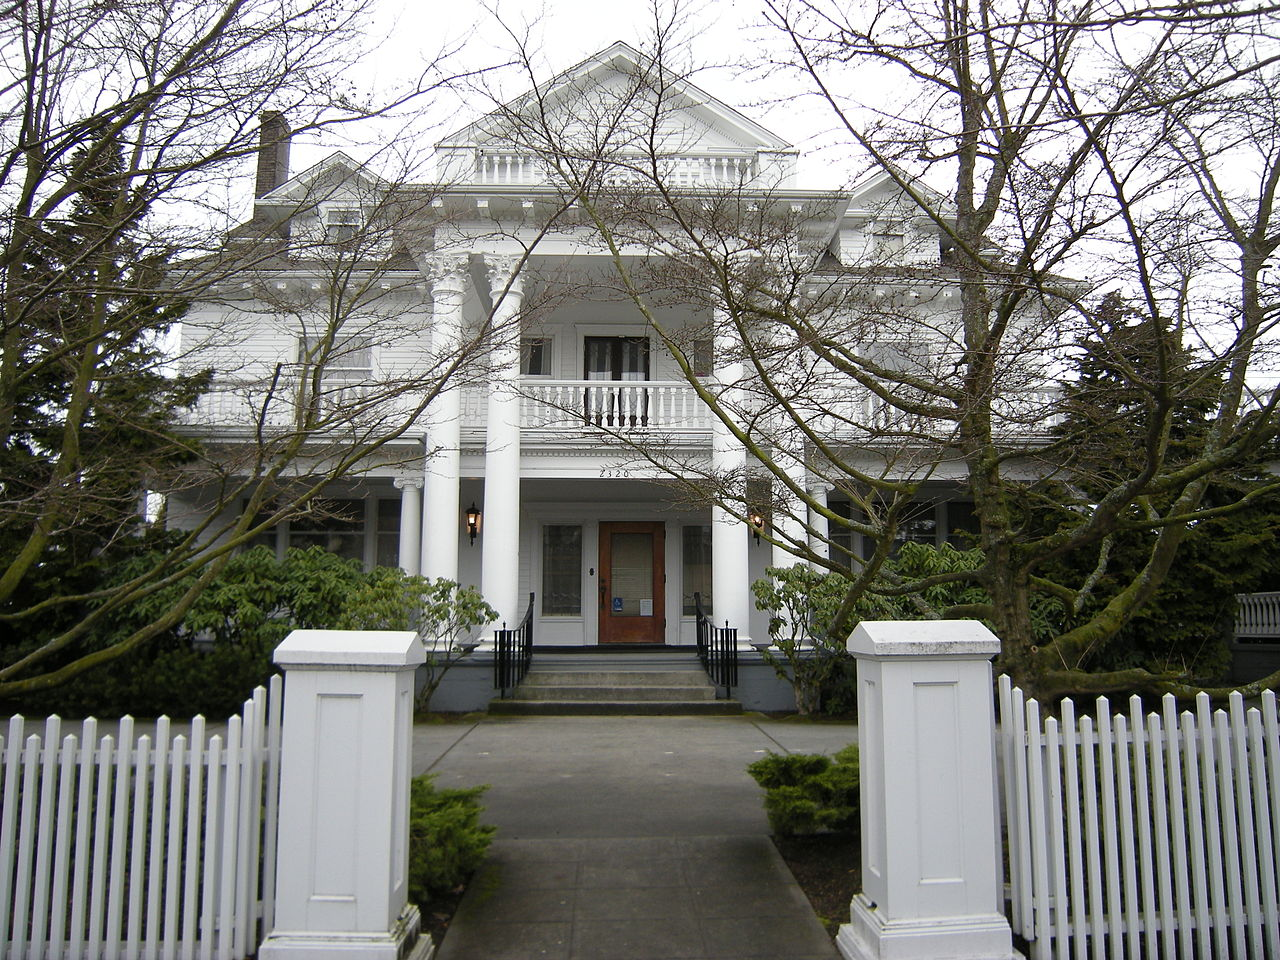 The Roland Hartley House is a well-preserved historic home designed in the Classical Revival style. It was the home of two-term Governor Roland Hartley.